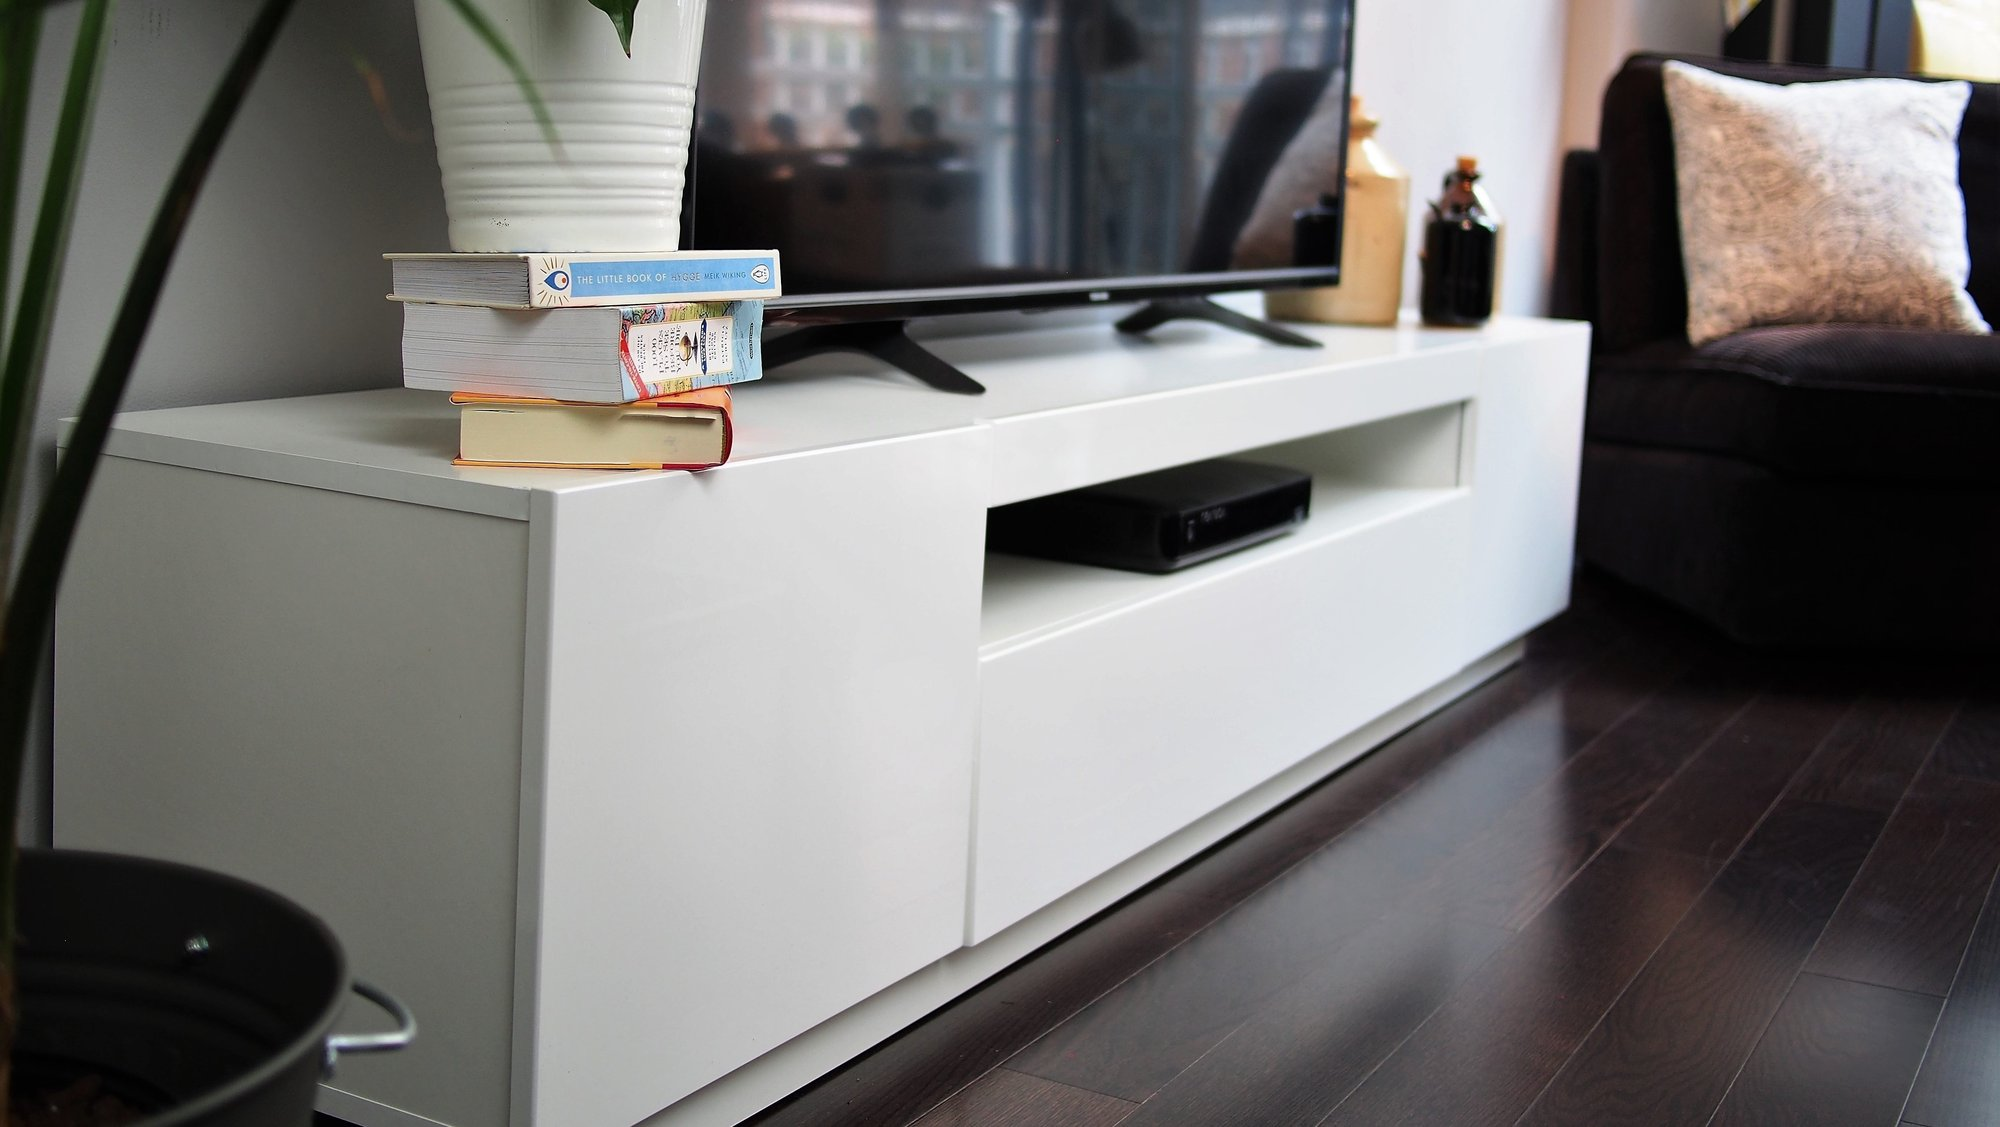 Which one is better – matte finish or gloss finish TV stand?